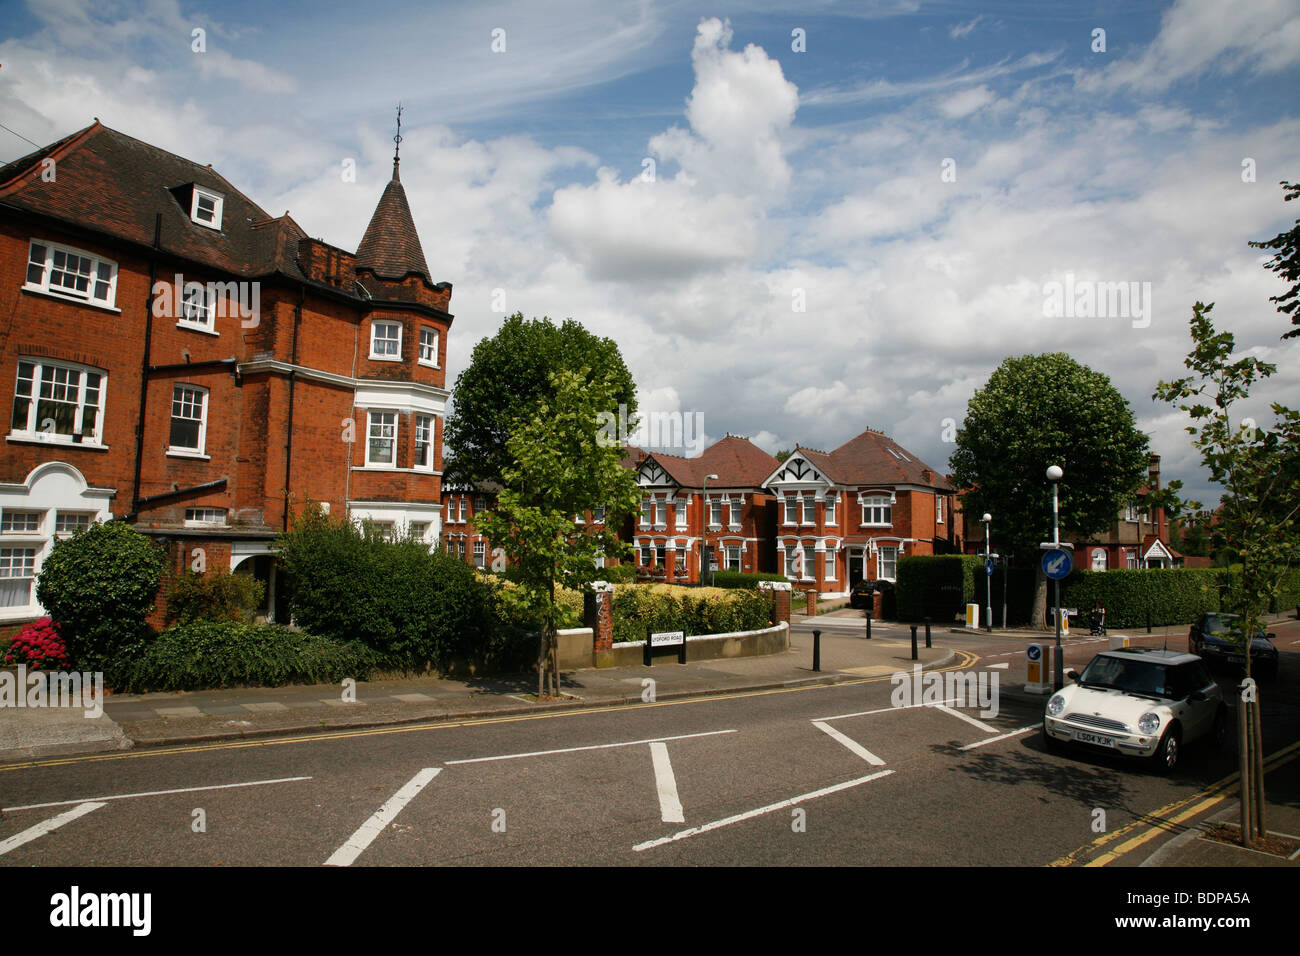 Junction of Dartmouth Road and Lydford Road, Willesden Green, London, UK - Stock Image